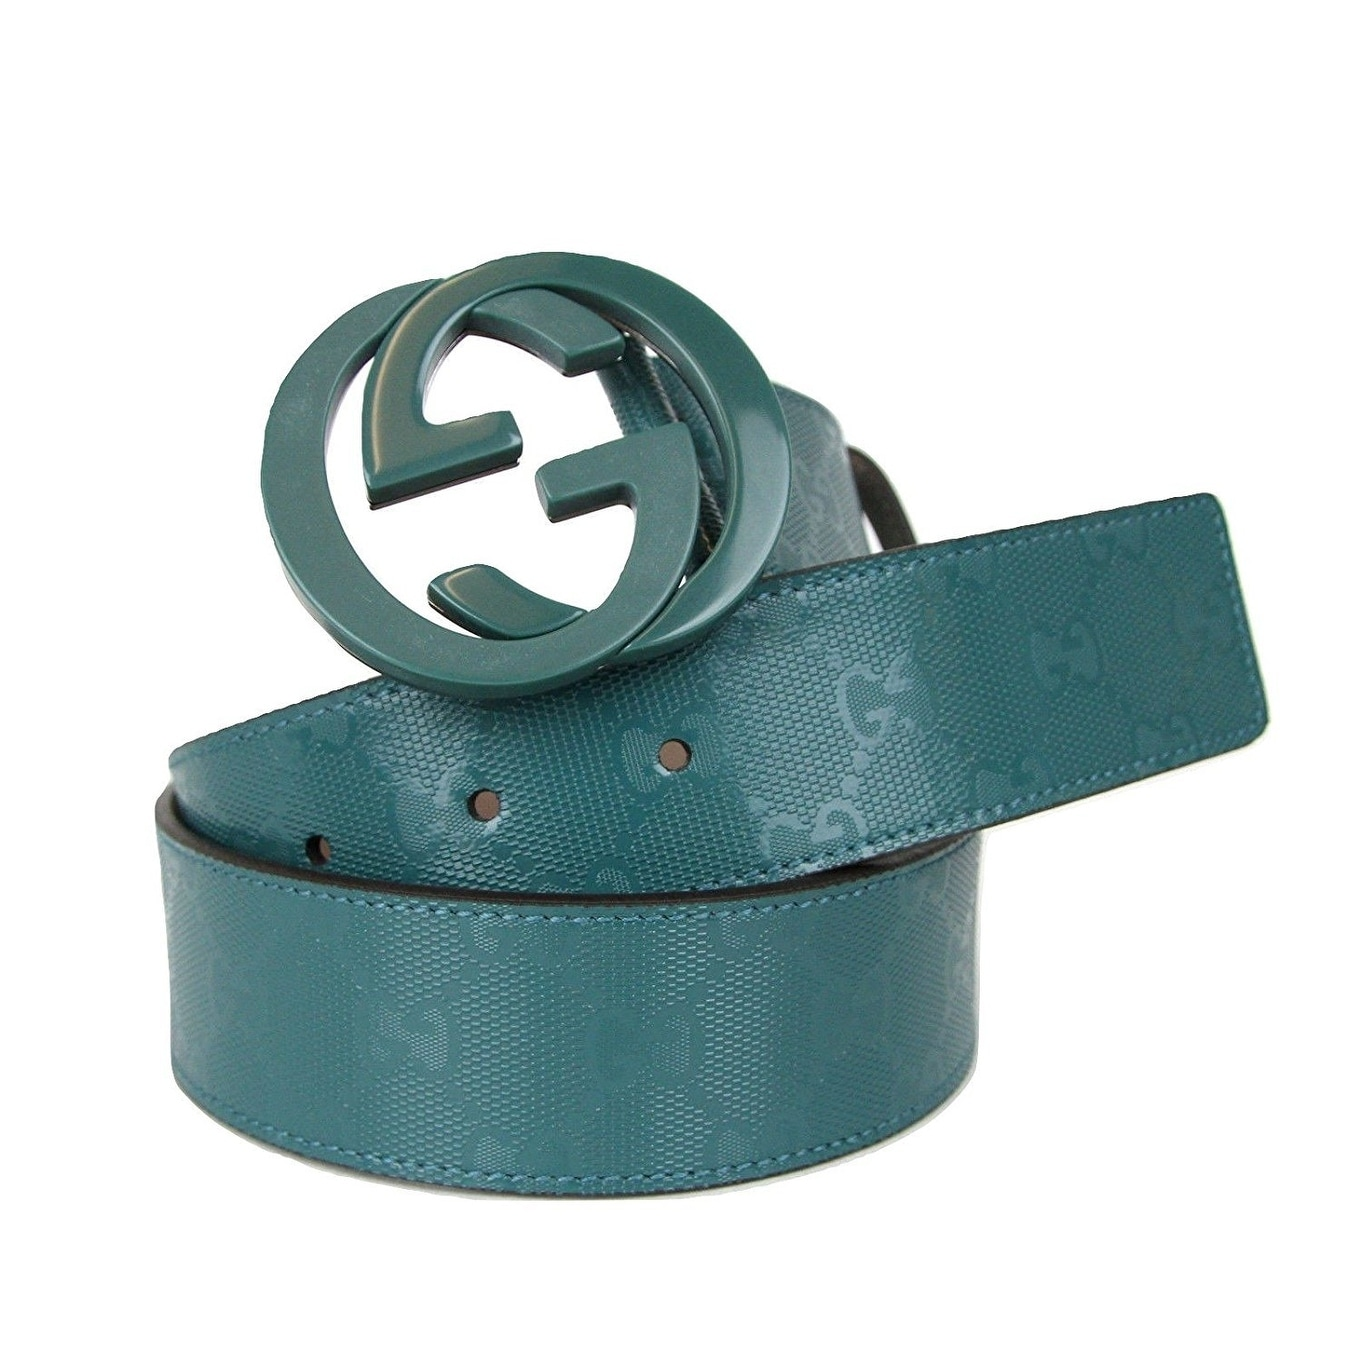 60f6cc7b51b Shop Gucci Men s Teal Imprime Interlocking G Buckle Belt 223891 4715 - Free  Shipping Today - Overstock - 25452902